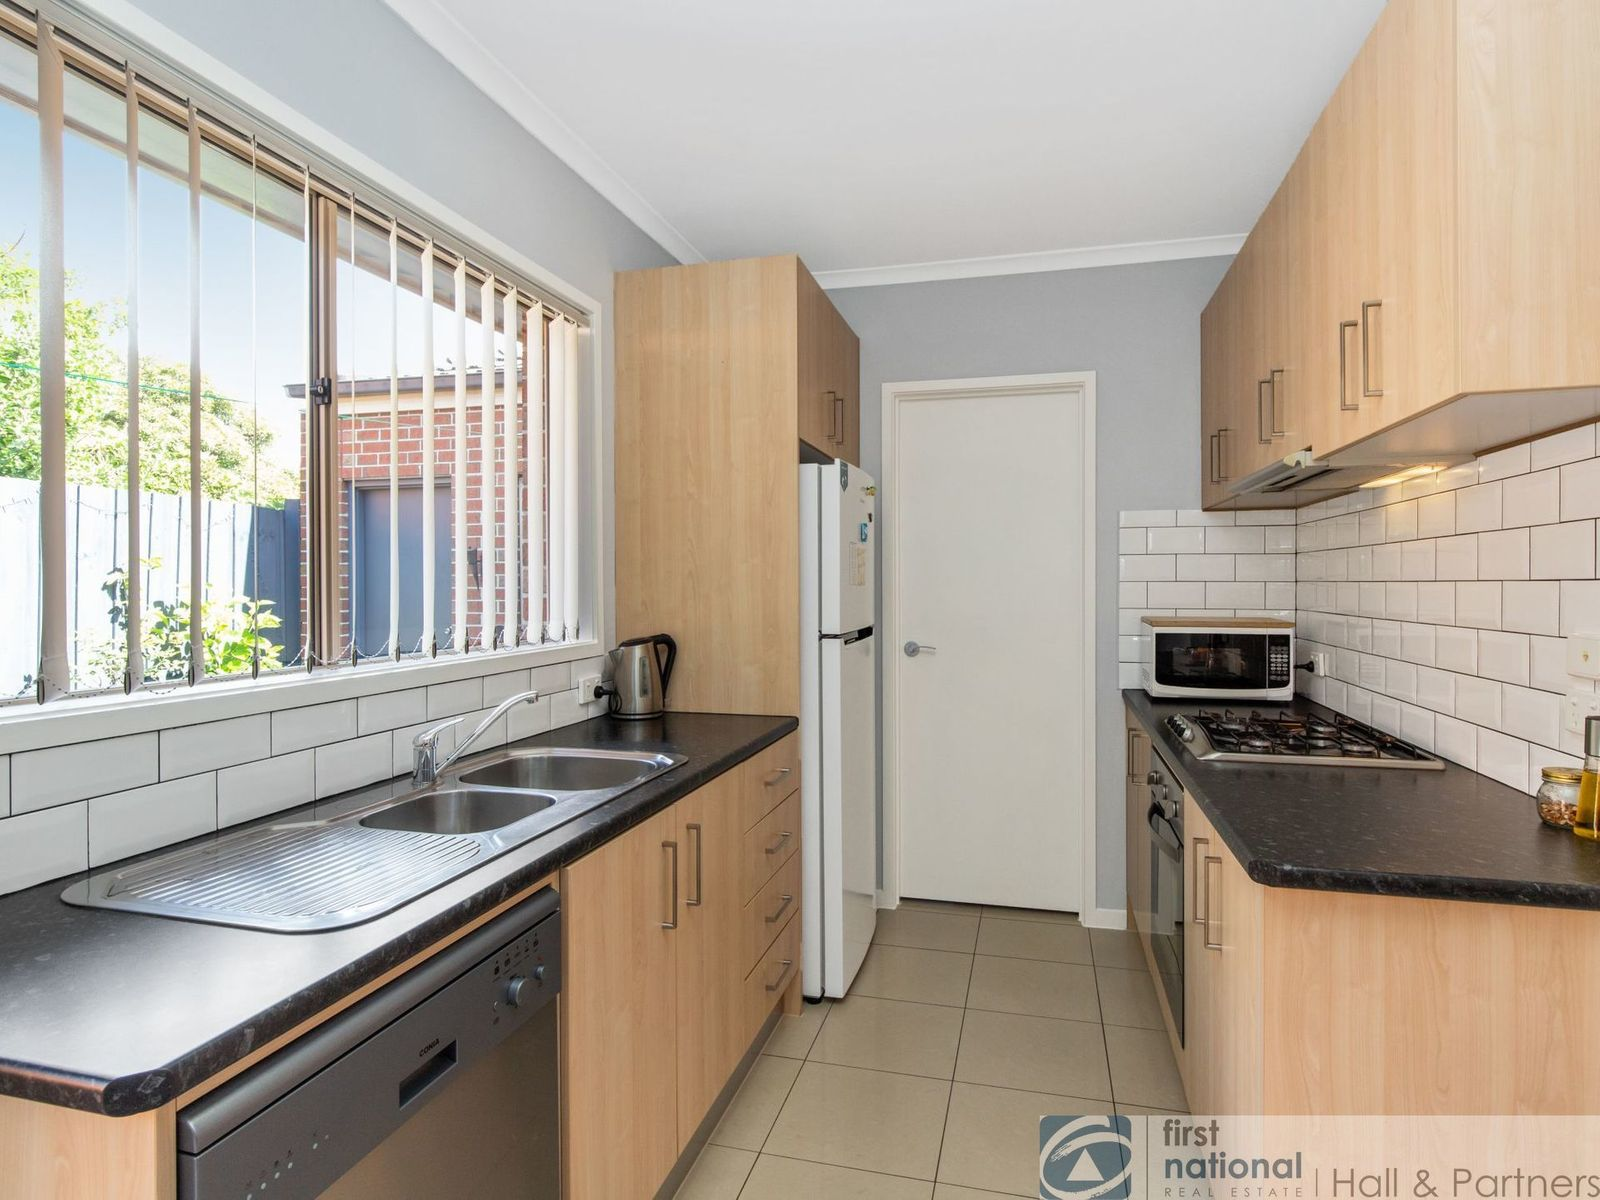 6/38 Frawley Road, Eumemmerring, VIC 3177